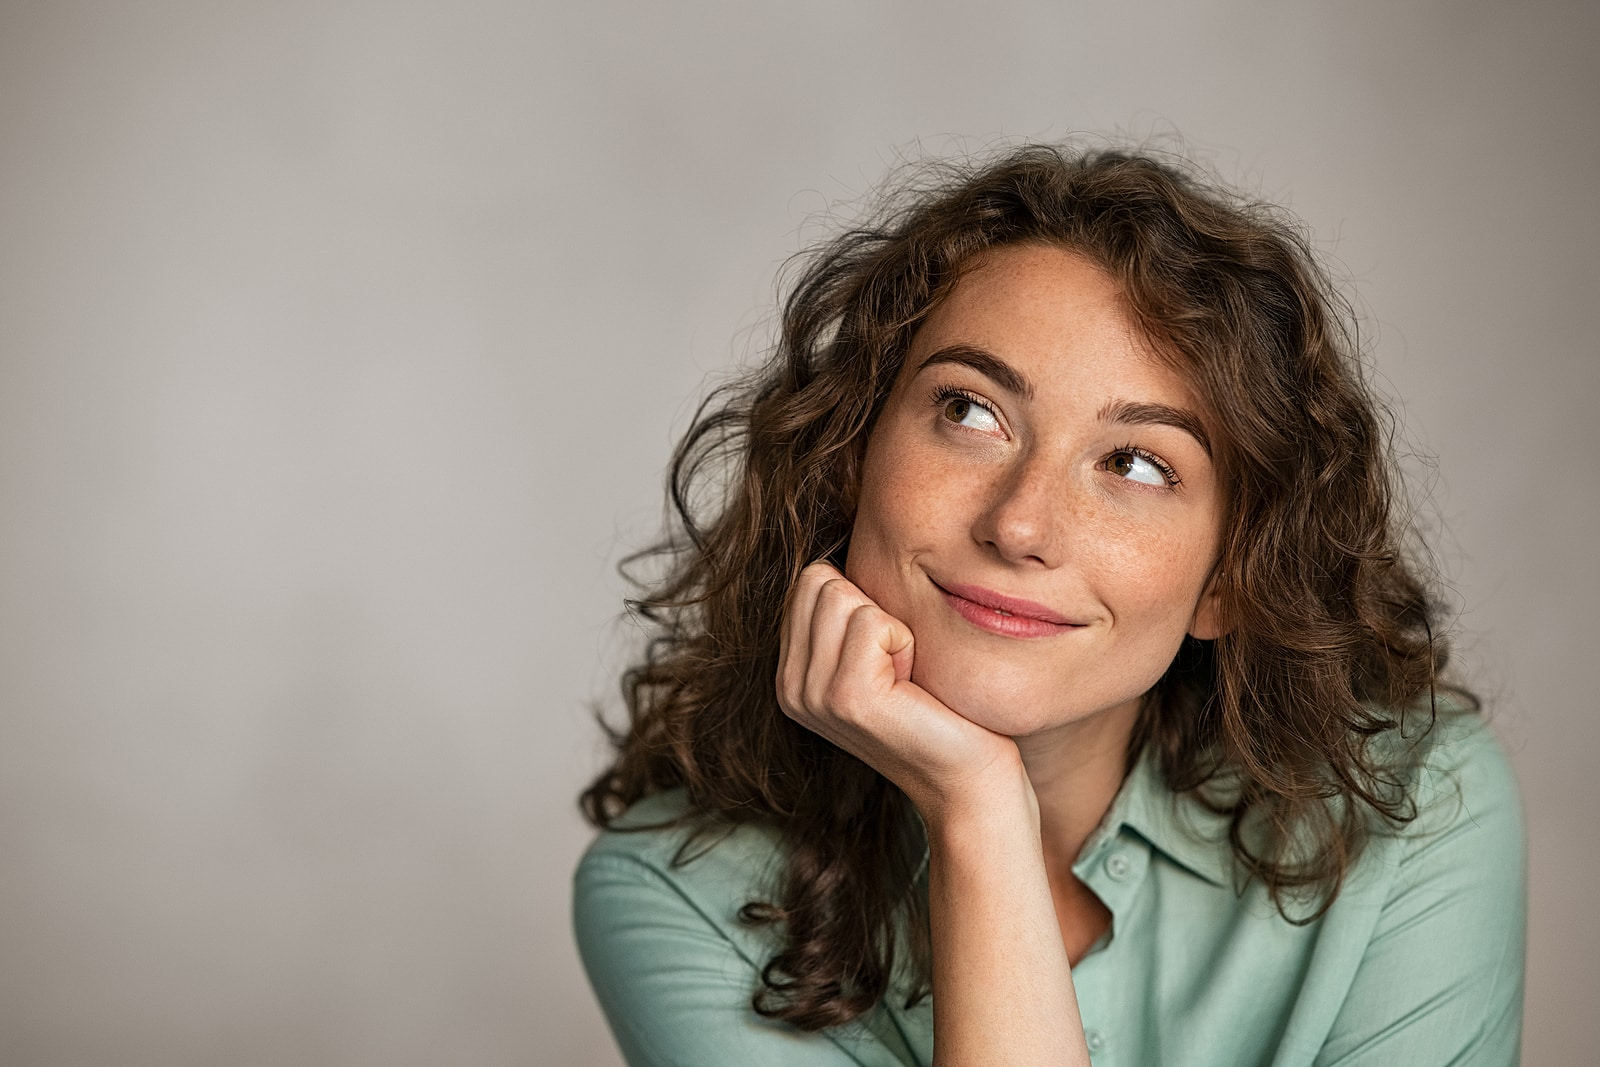 Emotional stress and pelvic pain- there is hope- woman feeling hopeful, smiling